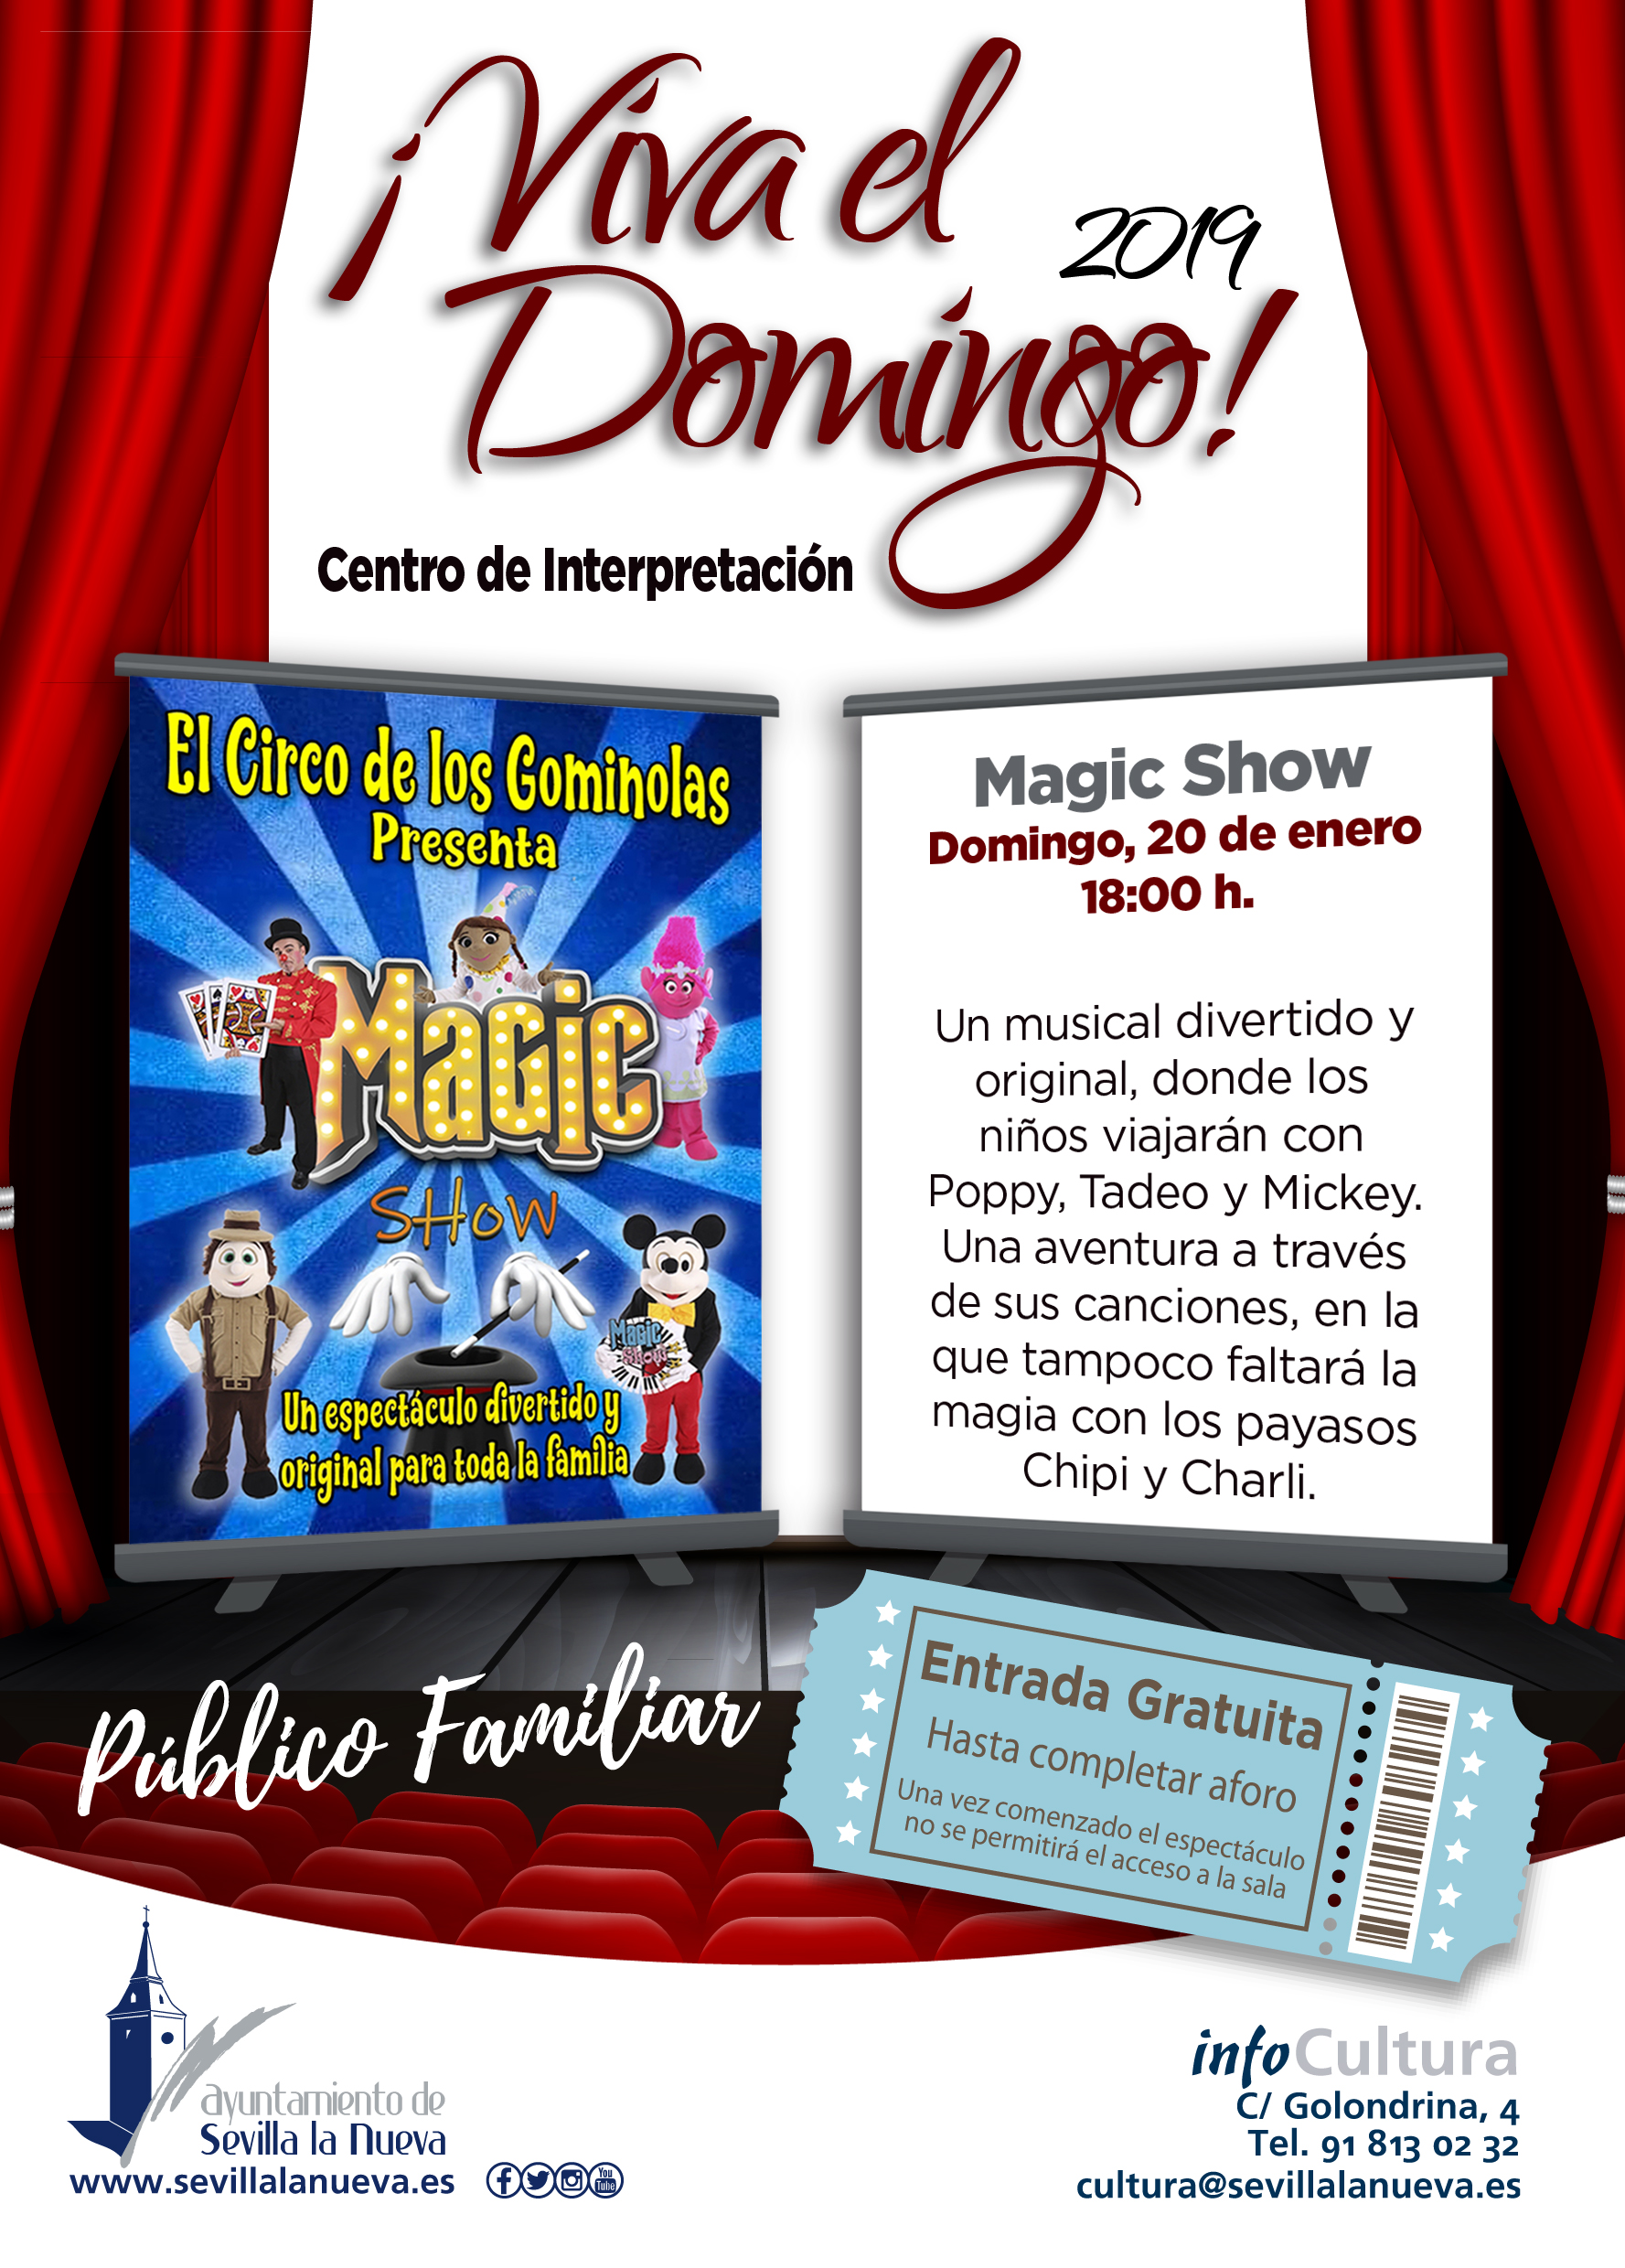 ¡Viva el domingo! - Magic Show @ Centro de Interpretación